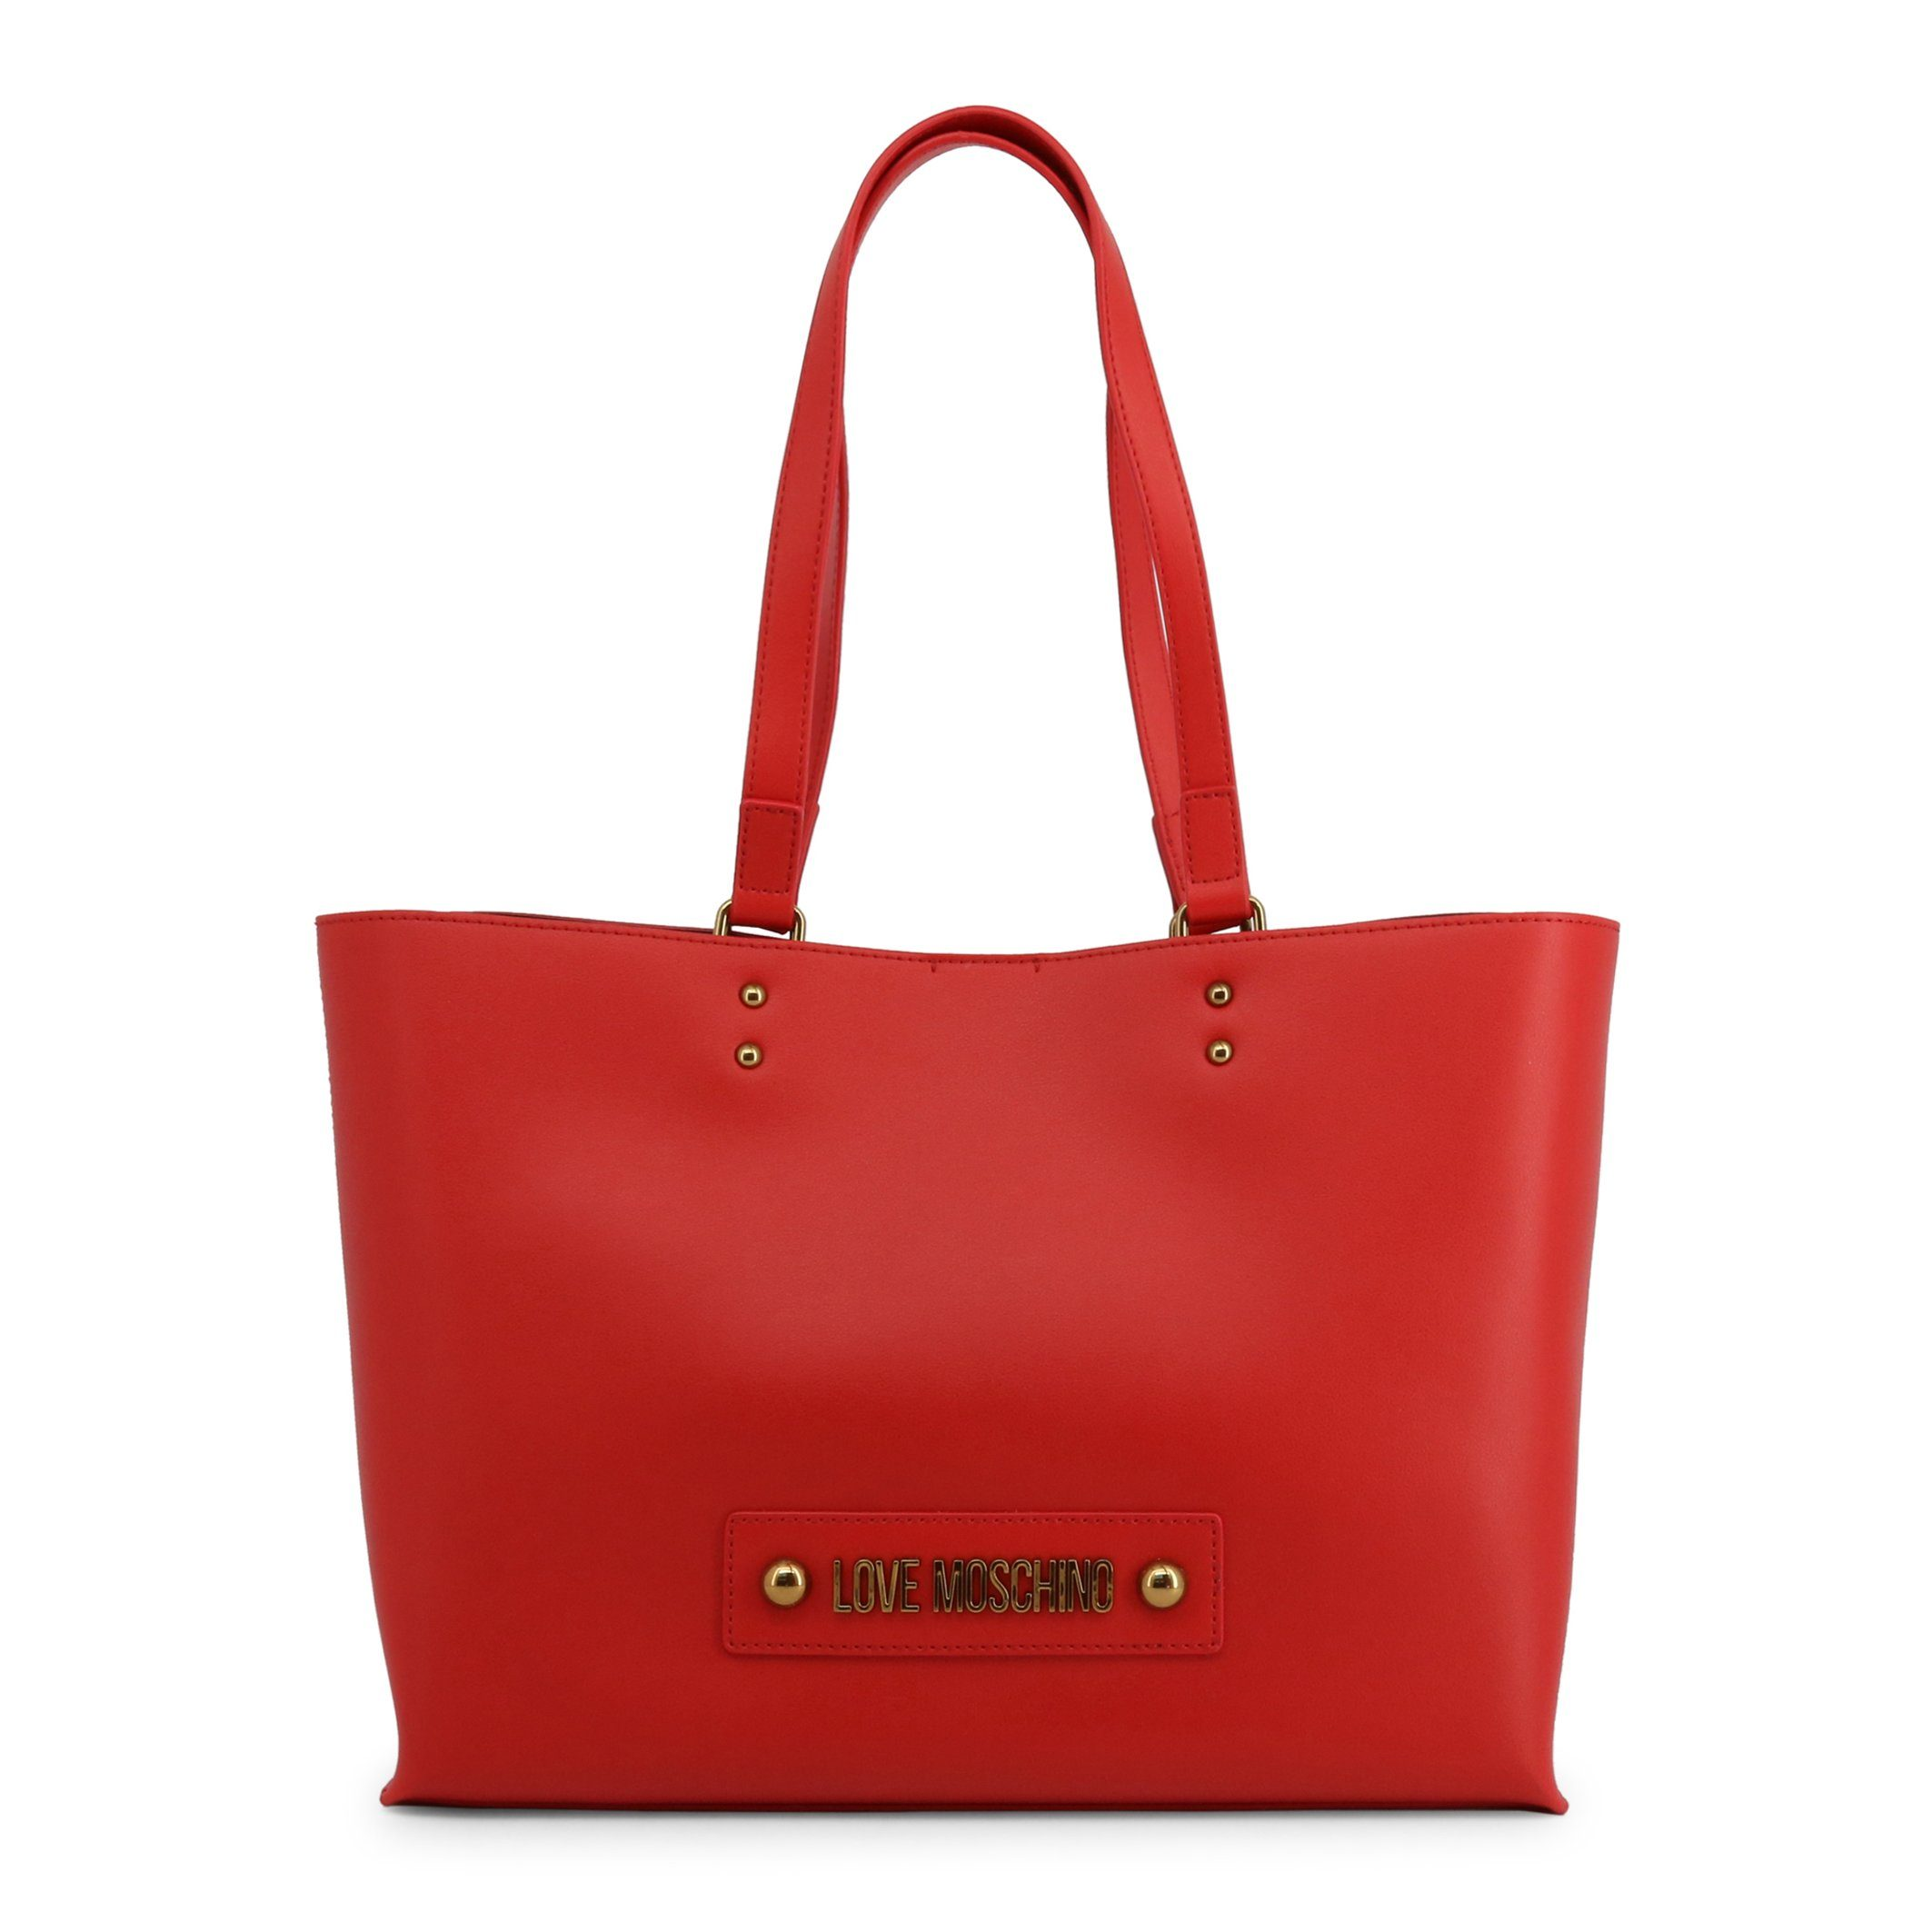 Love Moschino Double Handle Studded Tote Bags Bags Shopping bags Love Moschino red NOSIZE